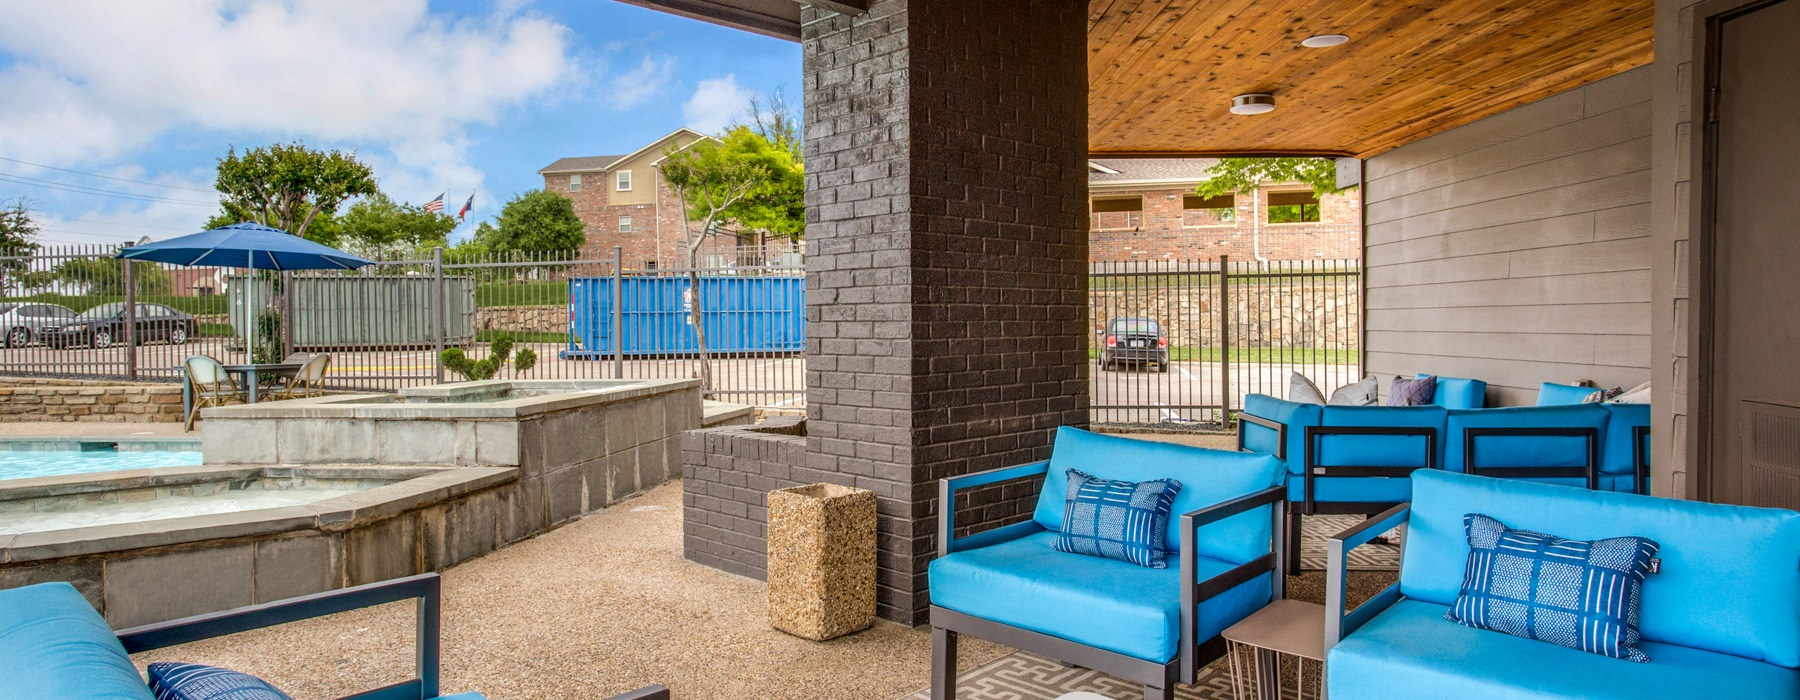 Outdoor Lounge area near the pool